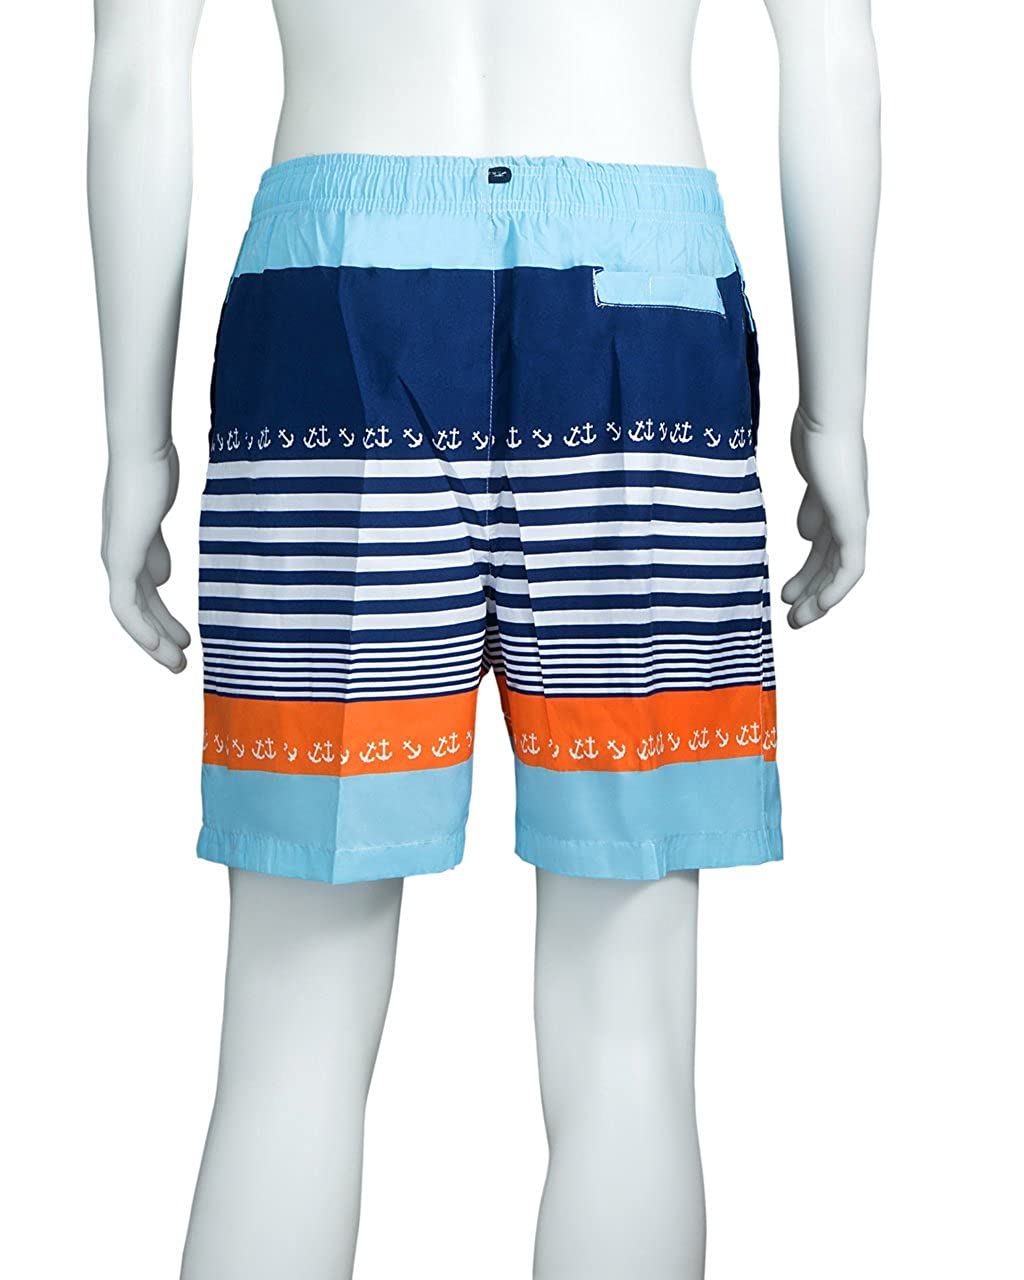 Swim Trunk Mens Boys Kids Swimwear Mesh Lining Adjustable Strap Elastic Waist